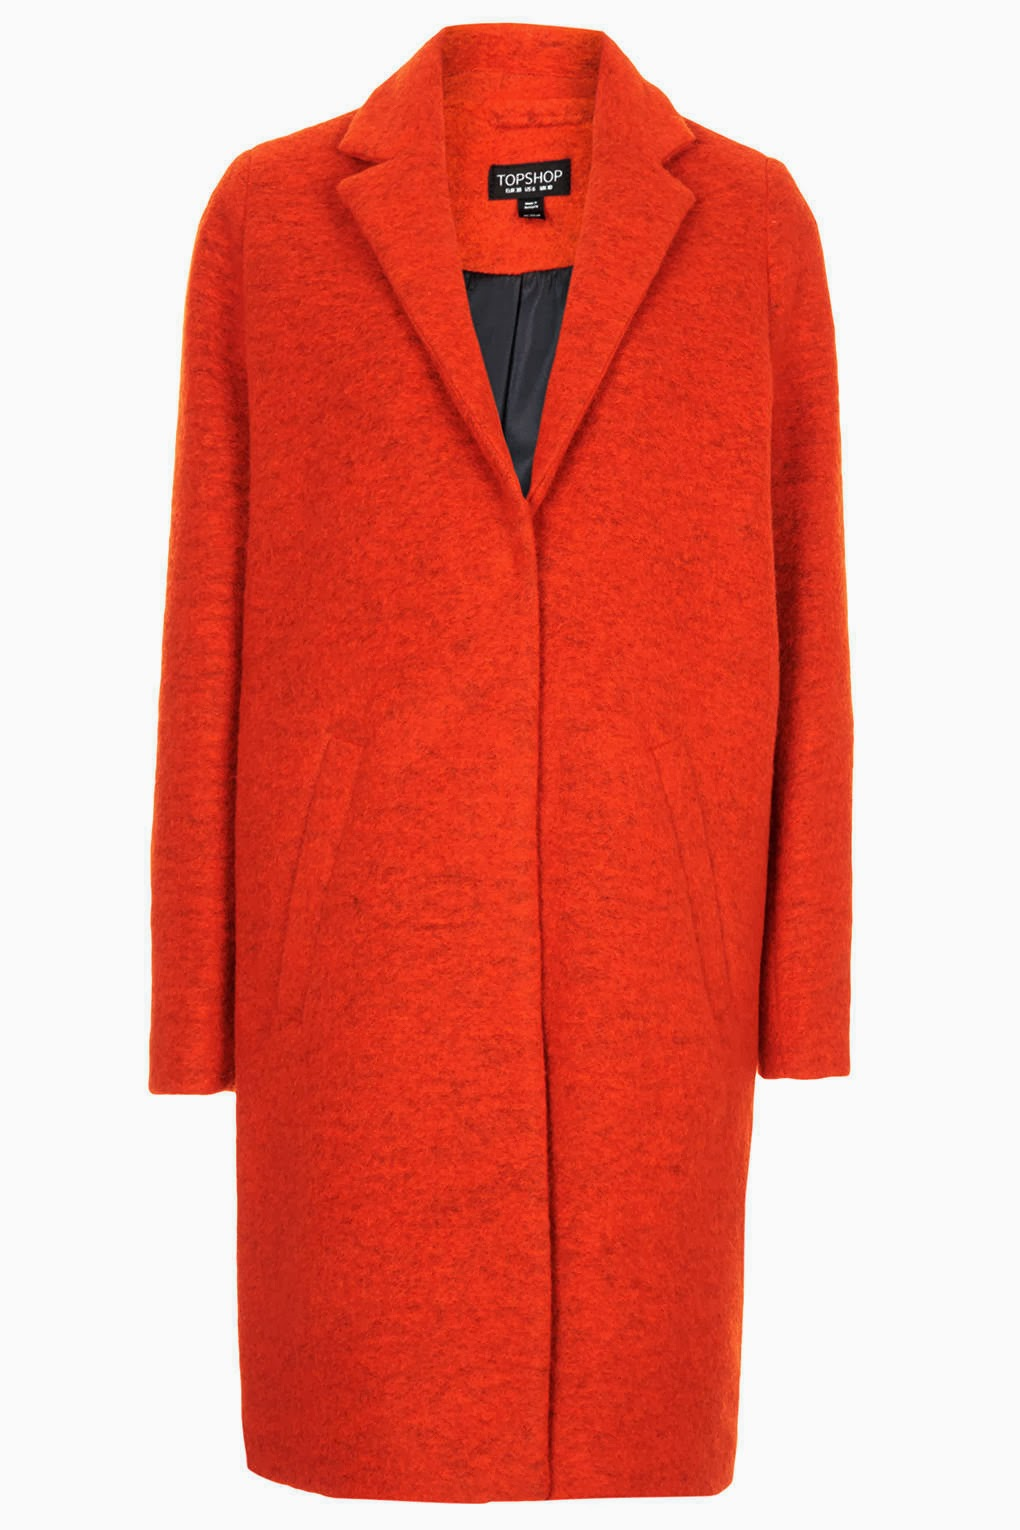 orange women's coat